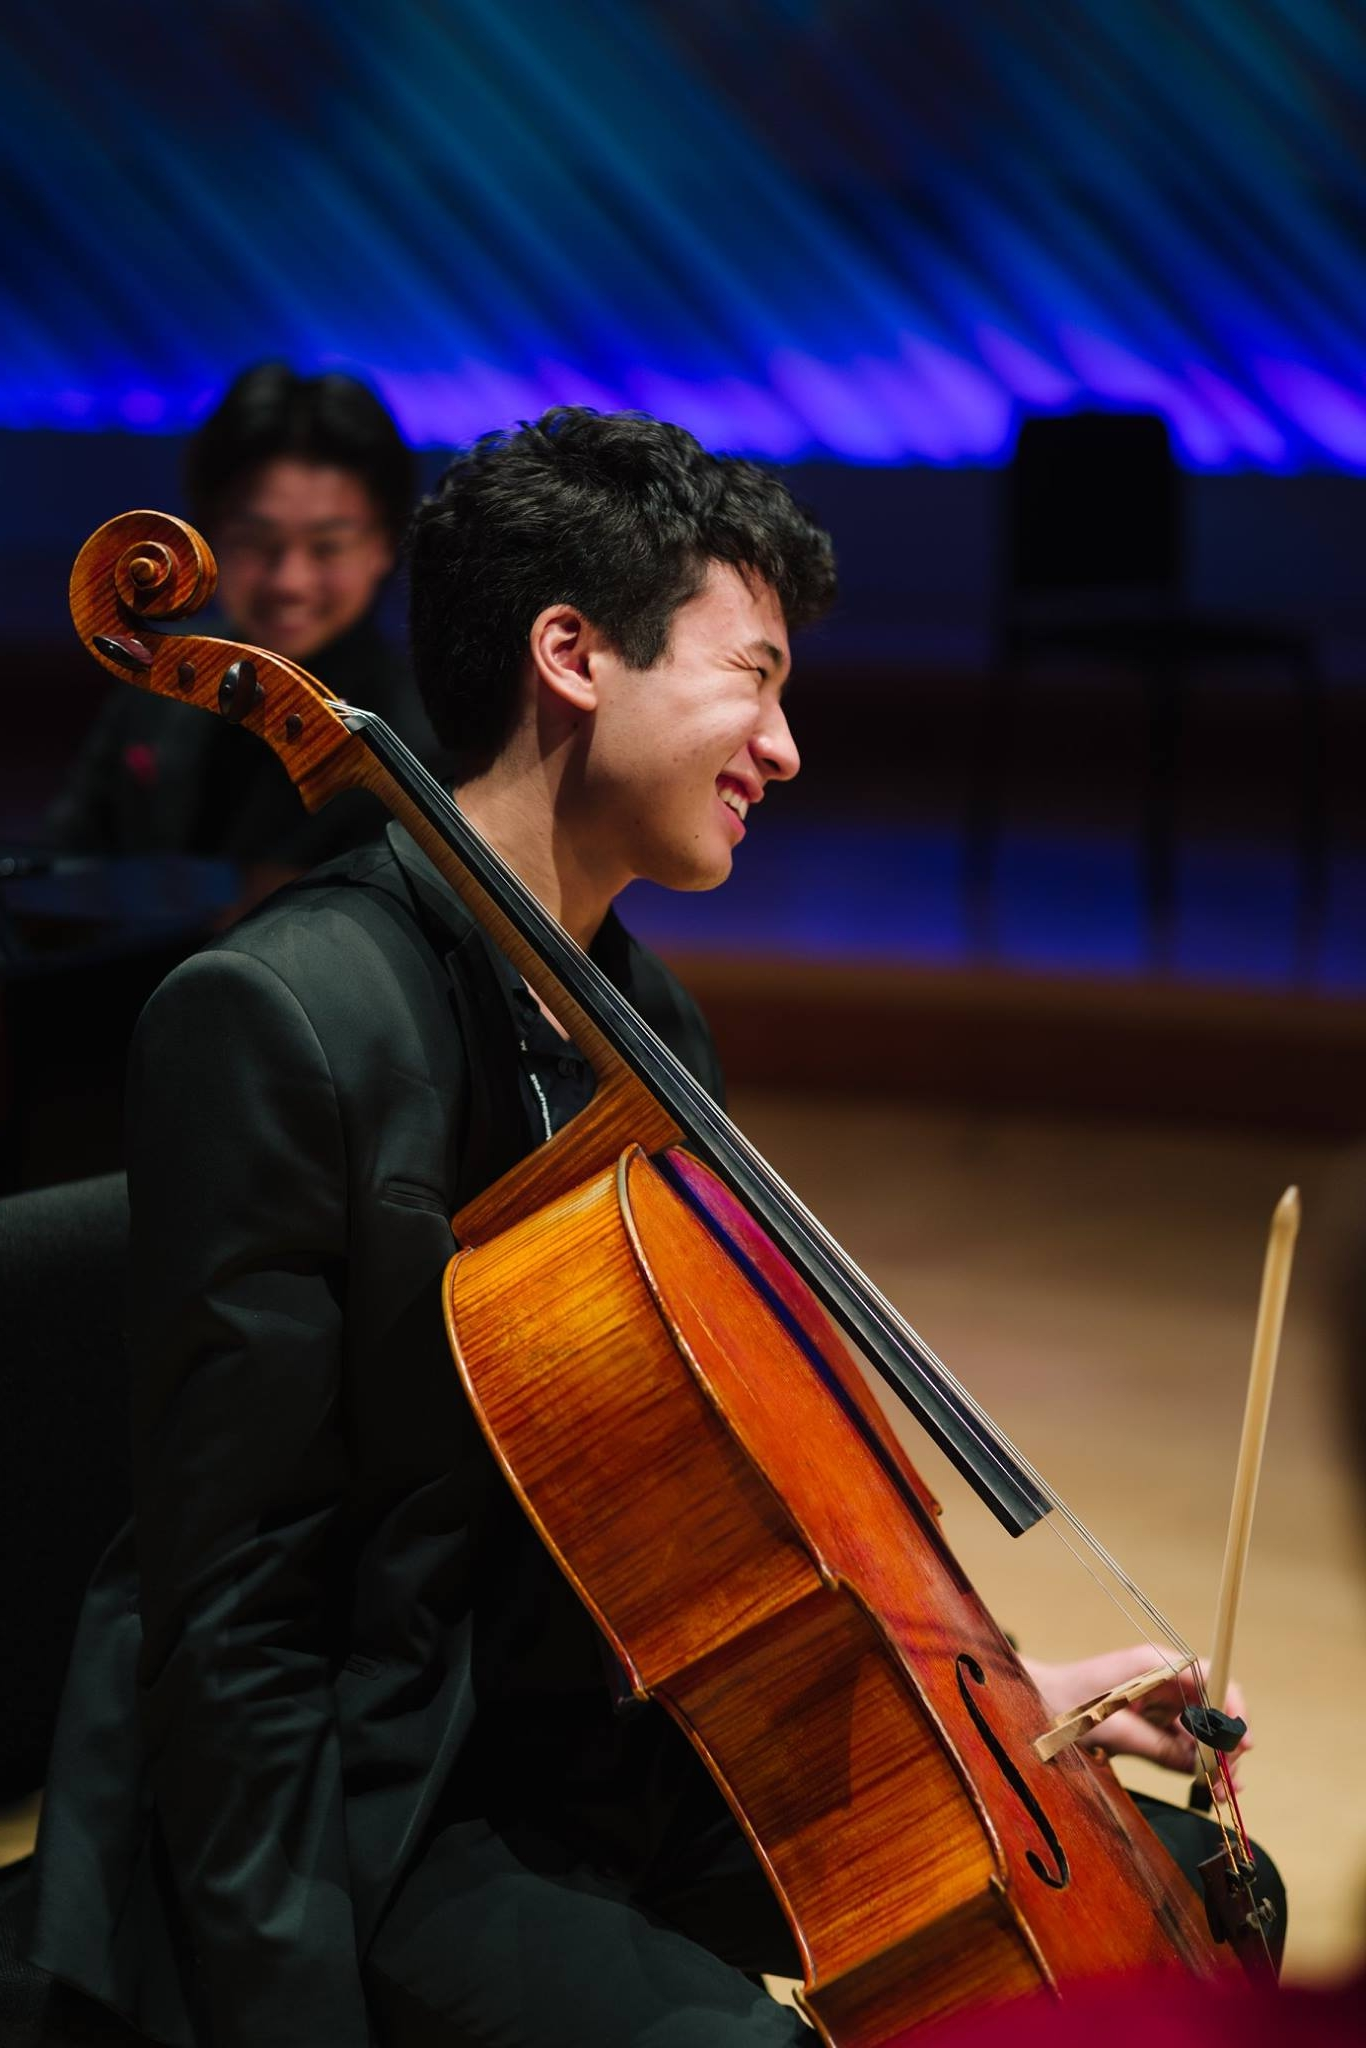 """MAX BOBBY - Eighteen year-old Max Bobby is a freshman at Harvard University. He studied cello at the Juilliard Pre-College Division with Richard Aaron and Sieun Lin. He began lessons with Maxine Neuman at Hoff Barthelson School of Music at the age of five and has been described as """"unusually gifted with an extraordinary degree of musical maturity"""".Max was a YoungArts 2018 finalist and was invited to Miami for YoungArts week. He was also winner of the 2015 Juilliard Pre College Concerto Competition, a semi-finalist at the Stulberg International String Competition and winner of the concerto competition at Indiana Summer Strings Academy. He has received full scholarships to International Morningside Music Bridge festival.Max has won top prizes at other national and international competitions, including the International Virtuoso Competition (grand prize), New York Music Competition (gold prize), Stamford Young Artists Concerto Competition (first prize), American Fine Arts Festival Competition (gold prize), American Protege Concerto Competition (gold prize), the Morningside Music Bridge Chamber Competition (second prize), Yonkers Philharmonic Concerto Competition (second prize) and the Pasadena Chamber Music Competition (Beethoven prize).Max loves anything tech, enjoys political satire, practices juggling, works on perfecting his pratfall, and is a connoisseur of cringe comedies and merguez sausages."""